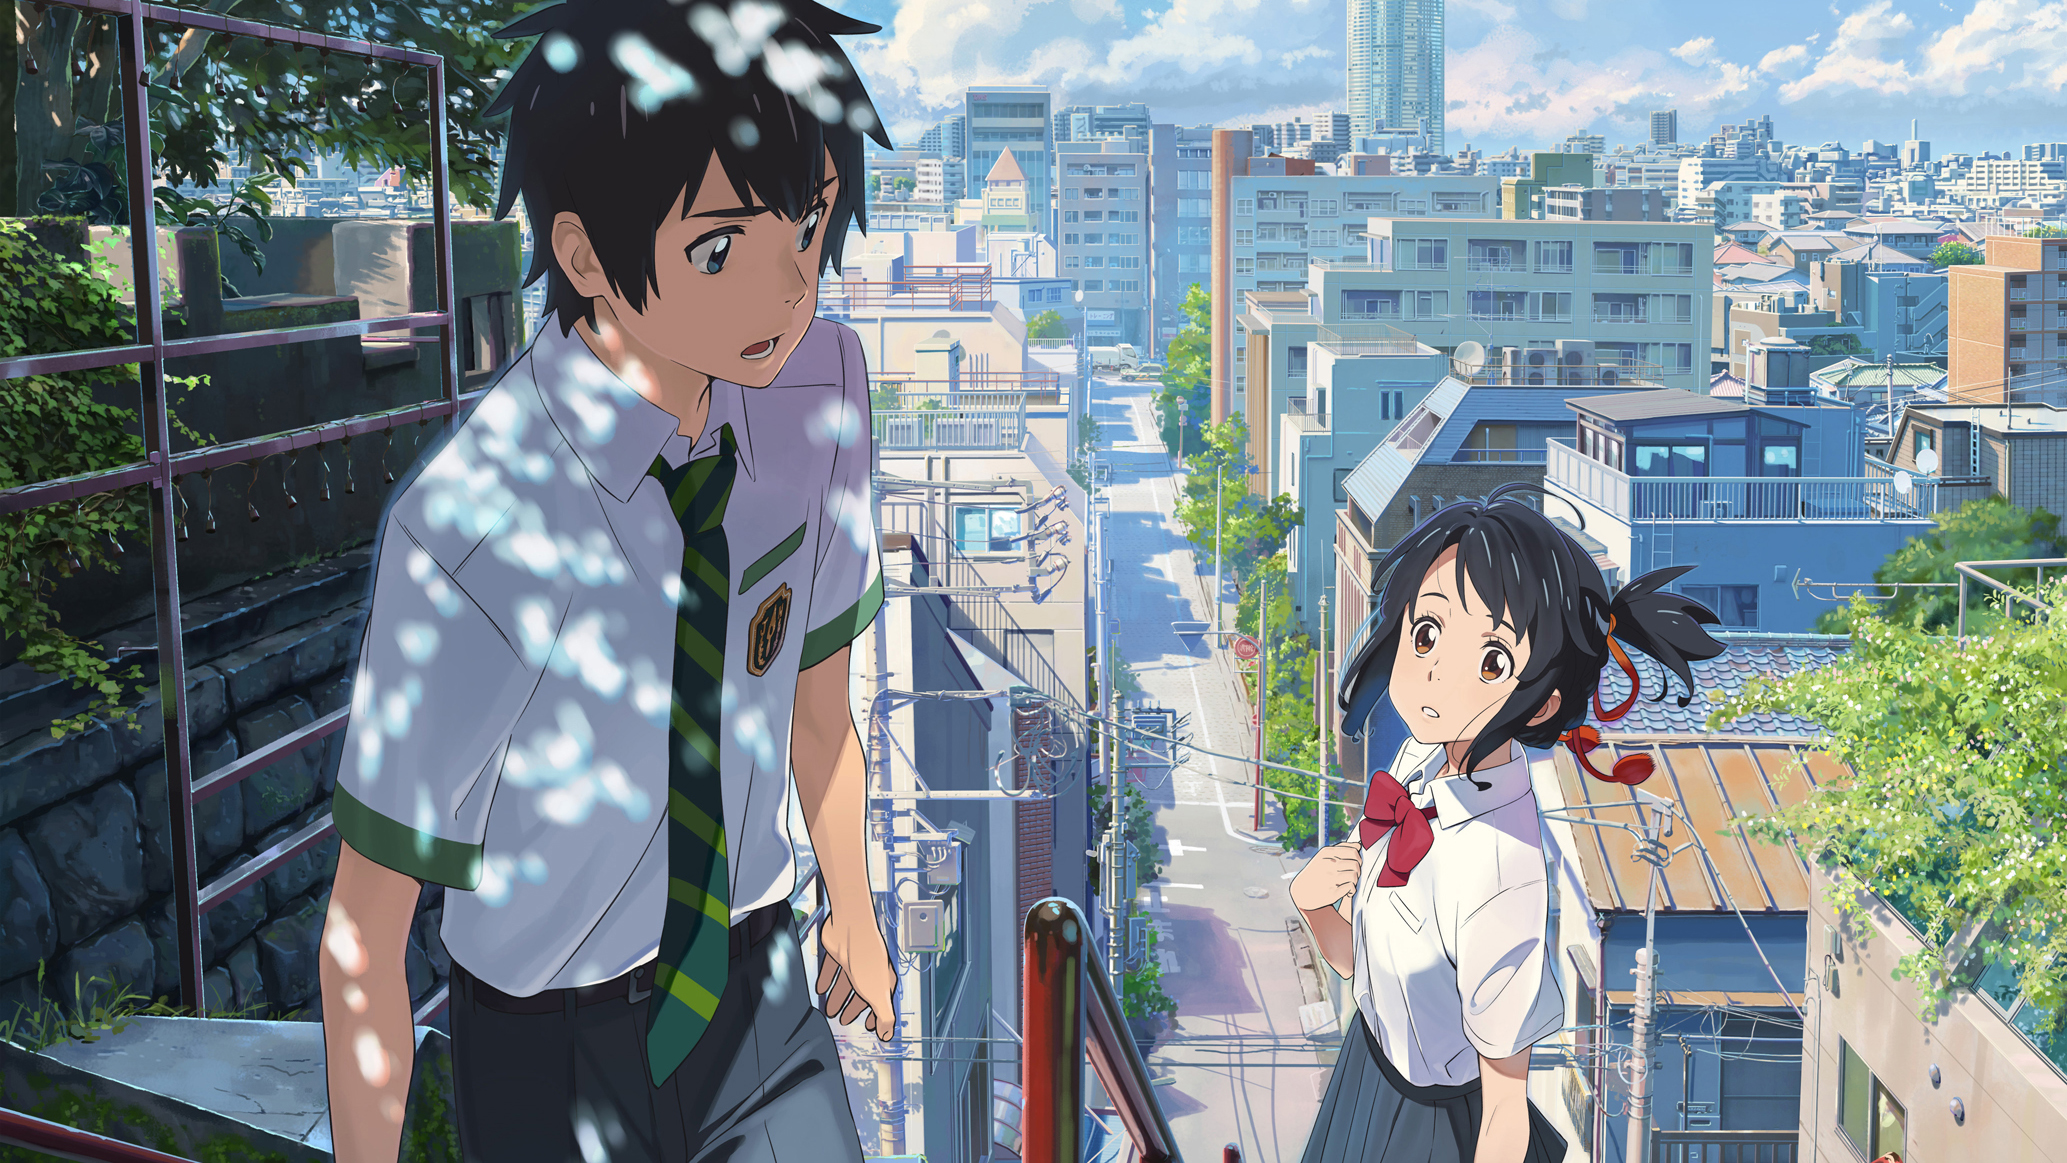 A still from the movie Your Name